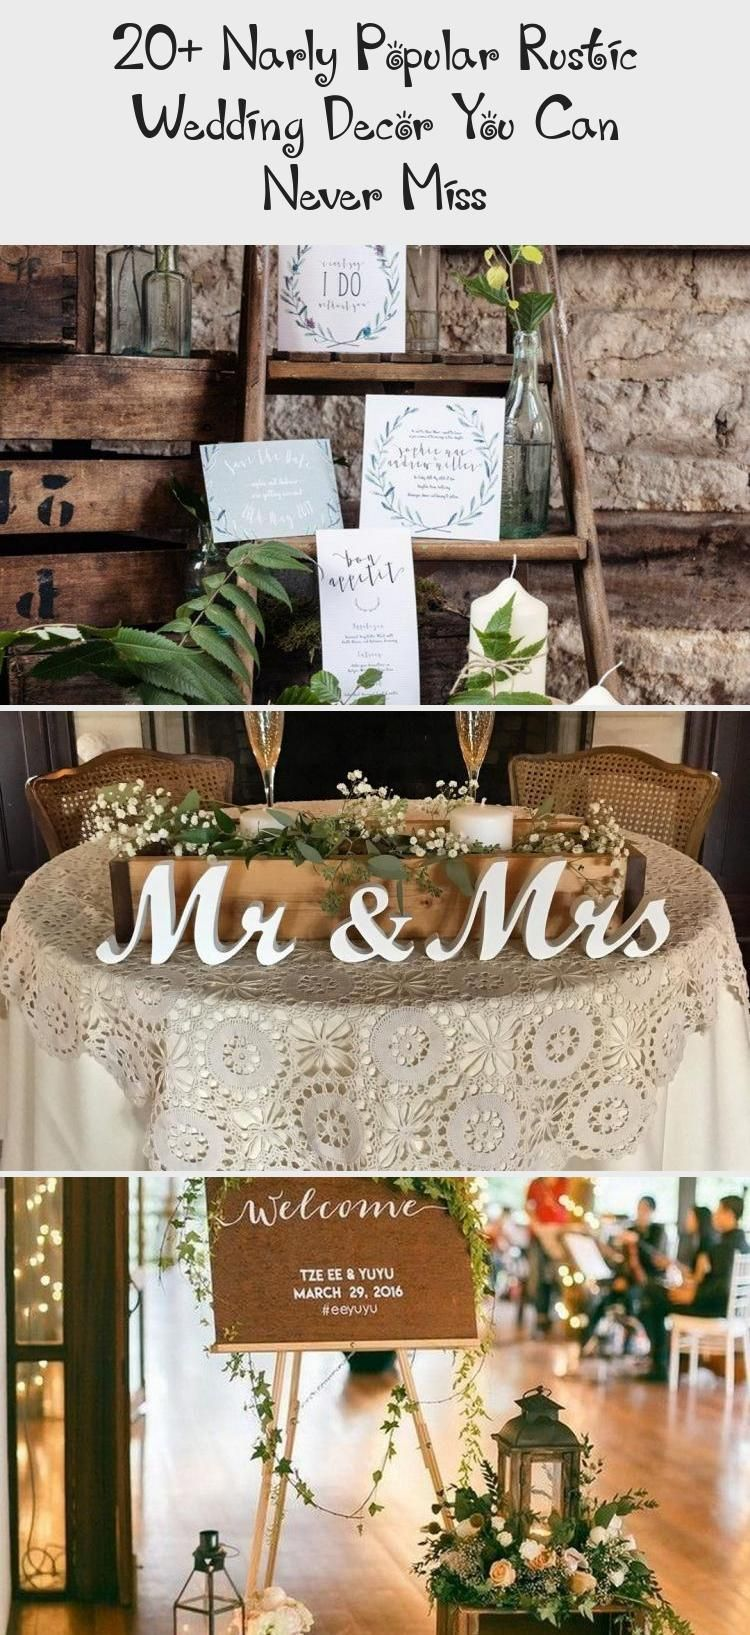 20+ NARLY POPULAR RUSTIC WEDDING DECOR YOU CAN NEVER MISS #diydecor #homedecor #homedecorideas #rusticweddingCard #rusticweddingStage #rusticweddingAlter #rusticweddingArbor #rusticweddingOutfit